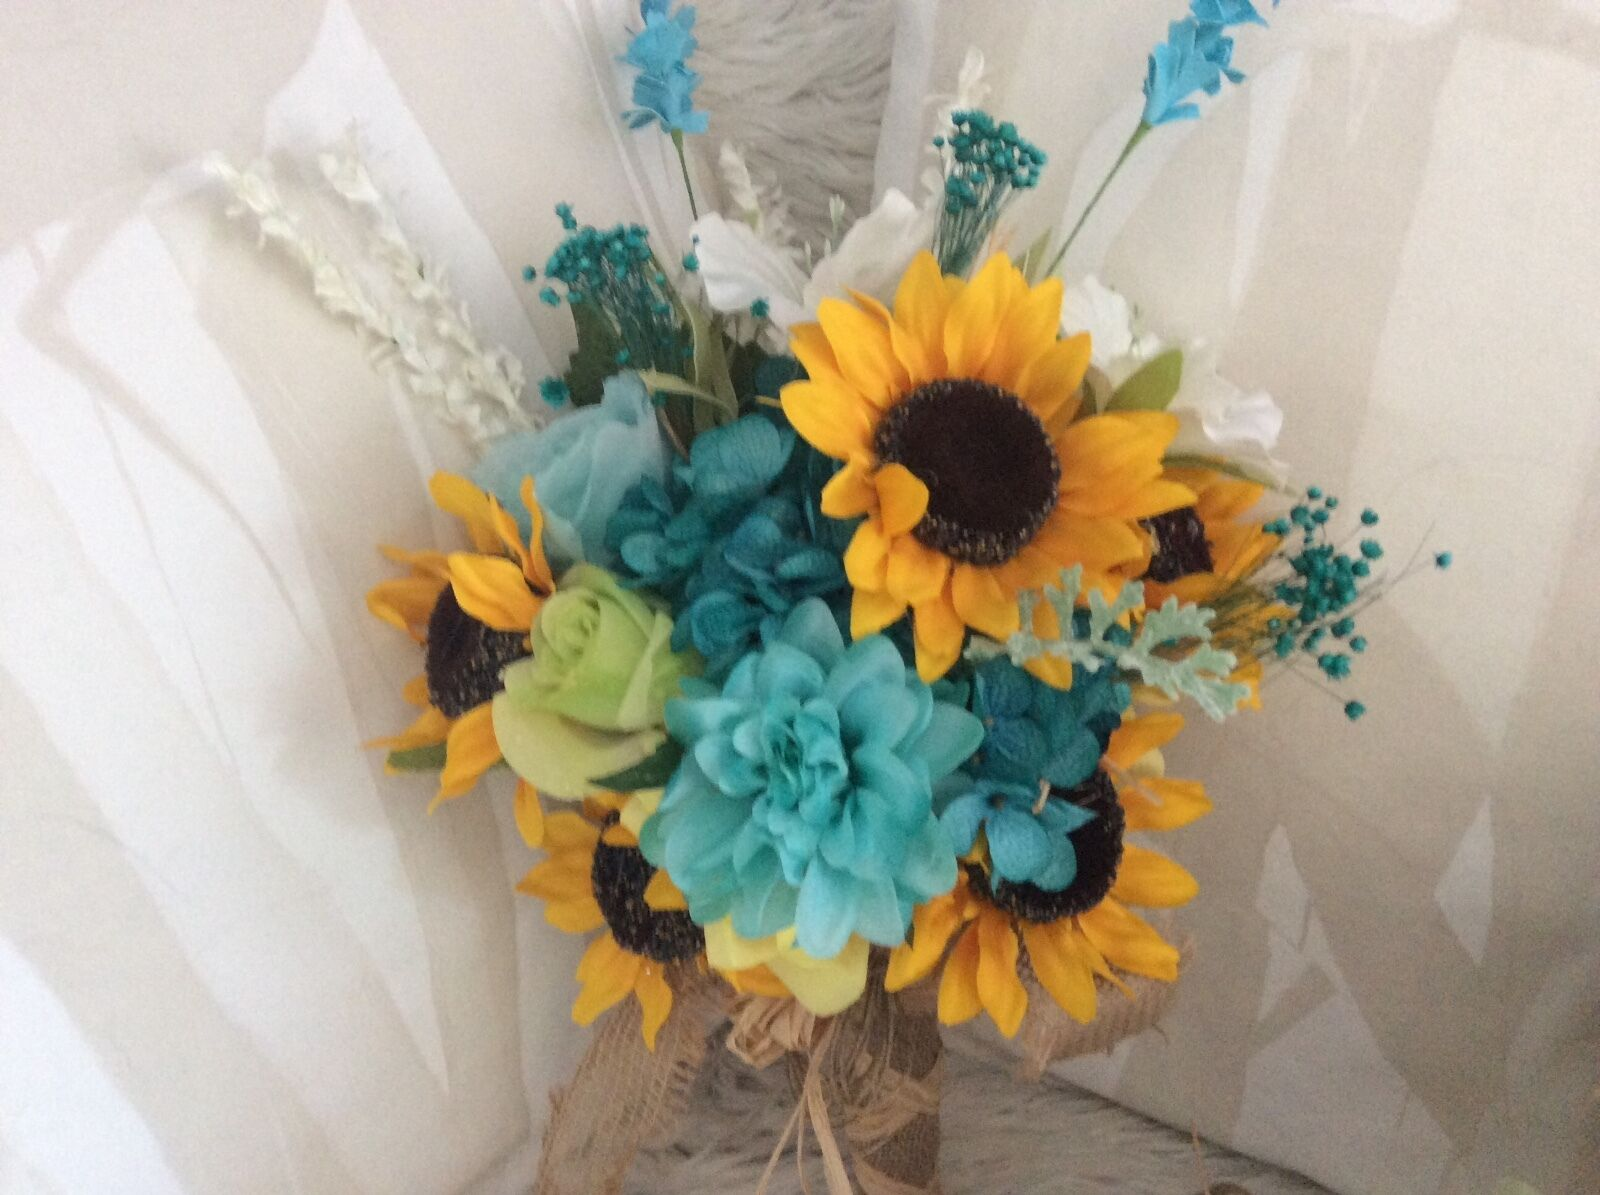 Mariage Fleurs Mariage bouquets Décorations Sunflowers turquoise Oasis